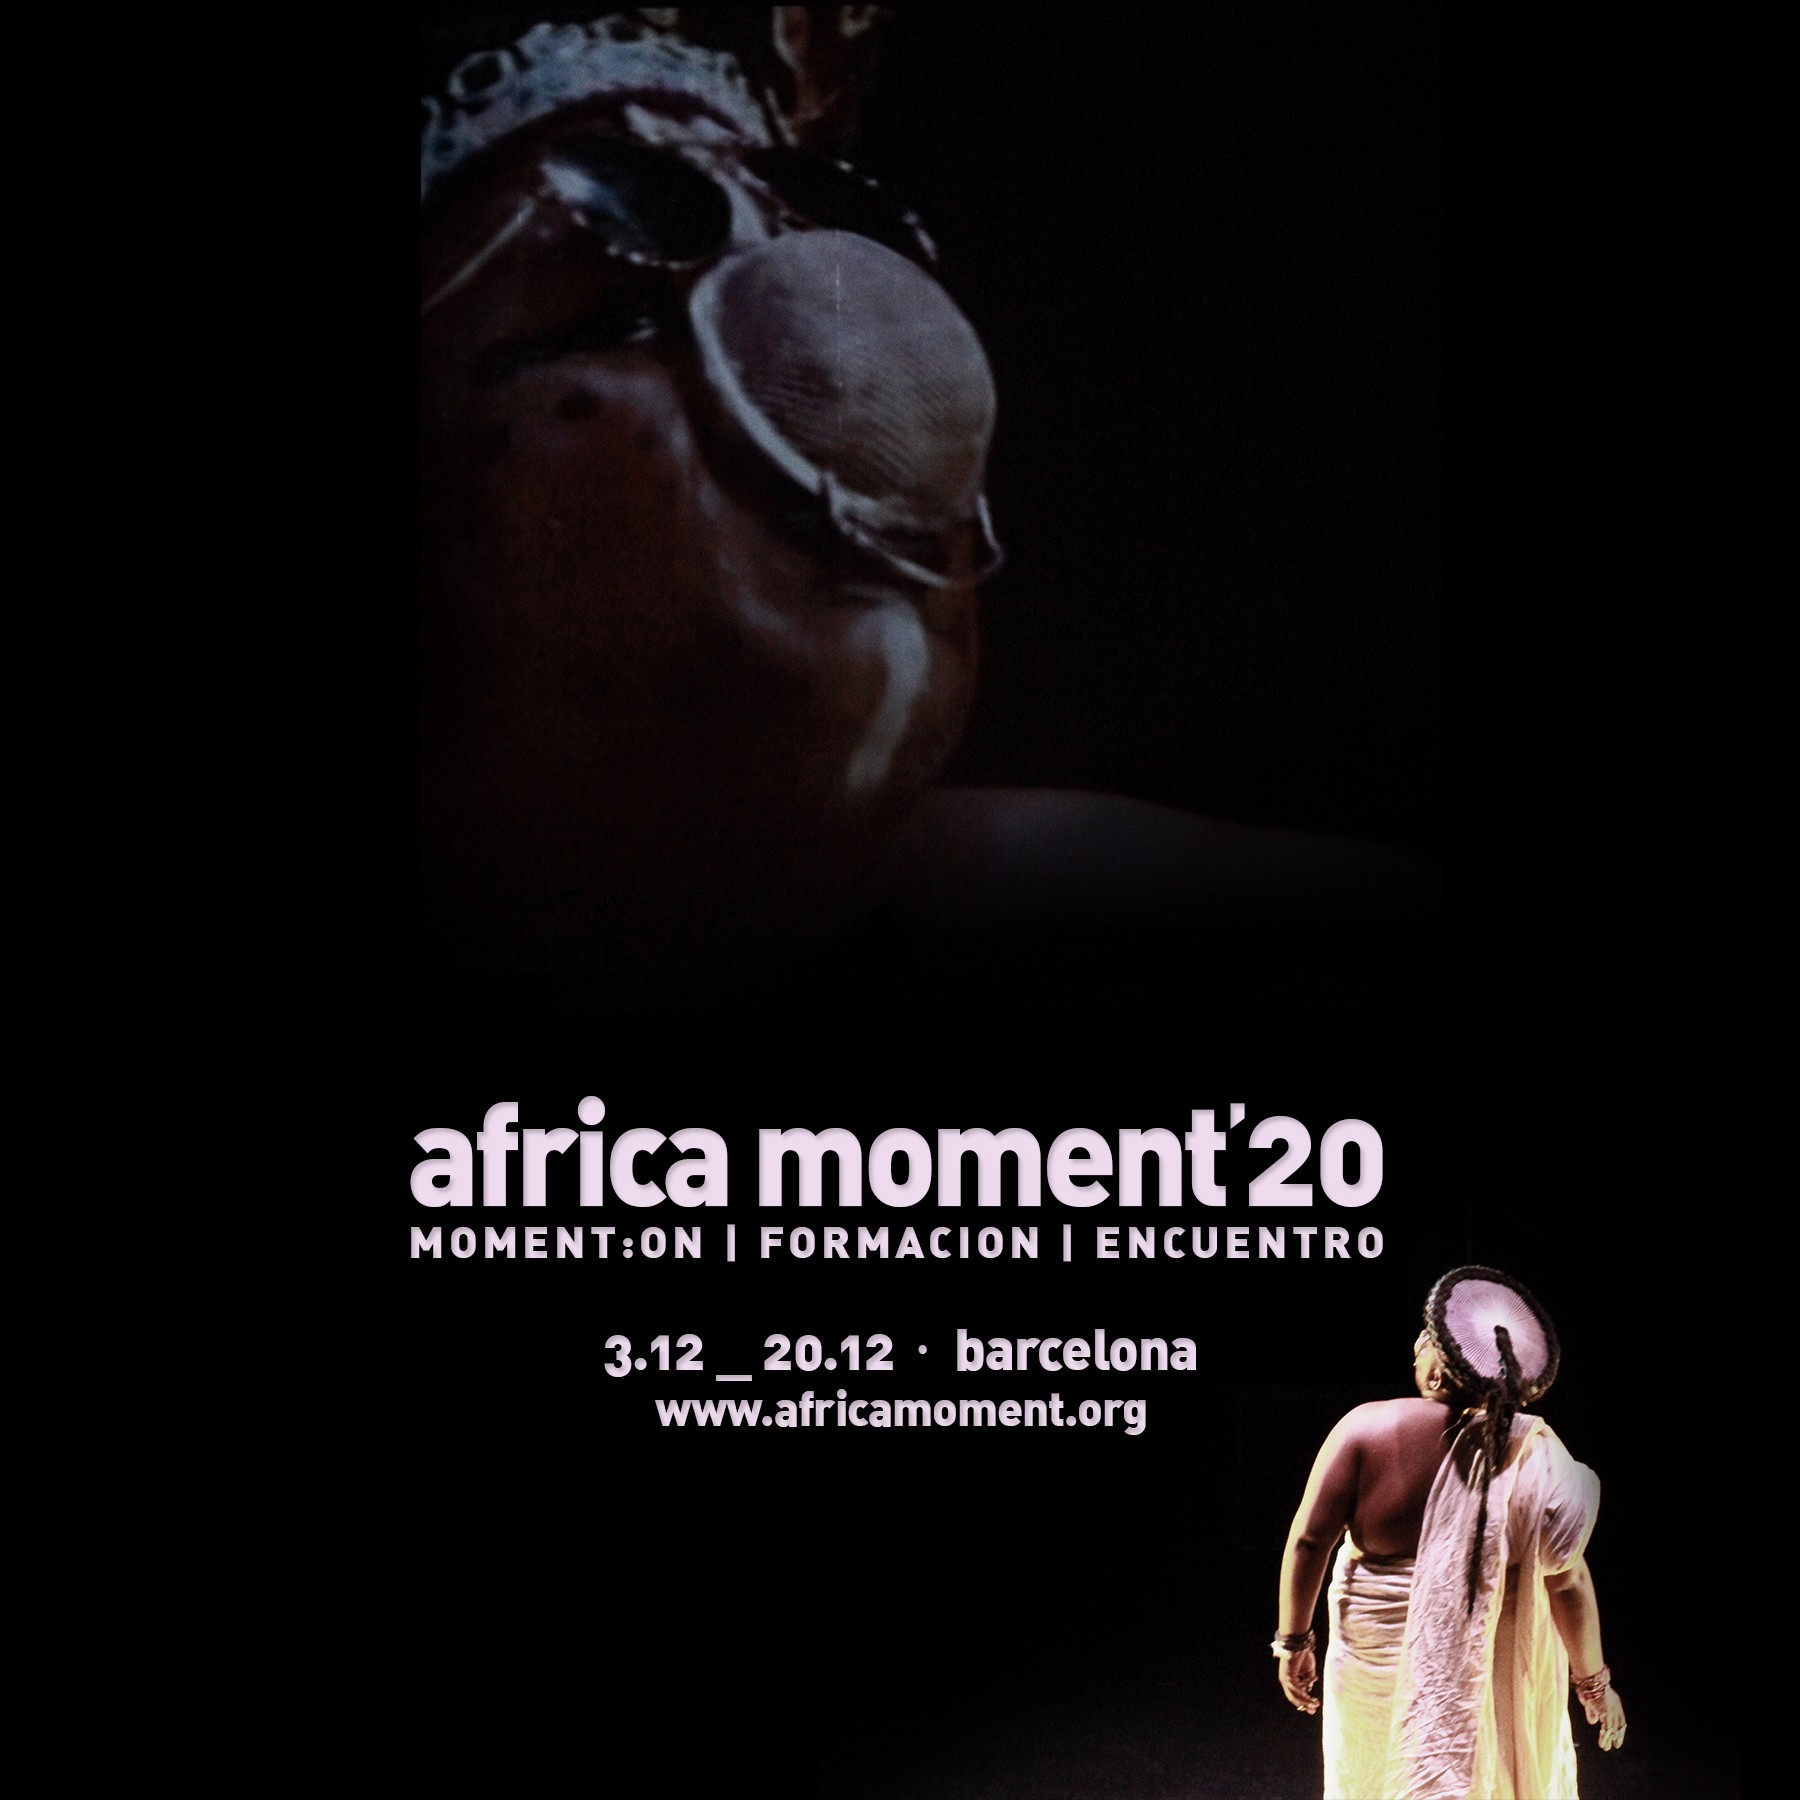 africa moment 2020